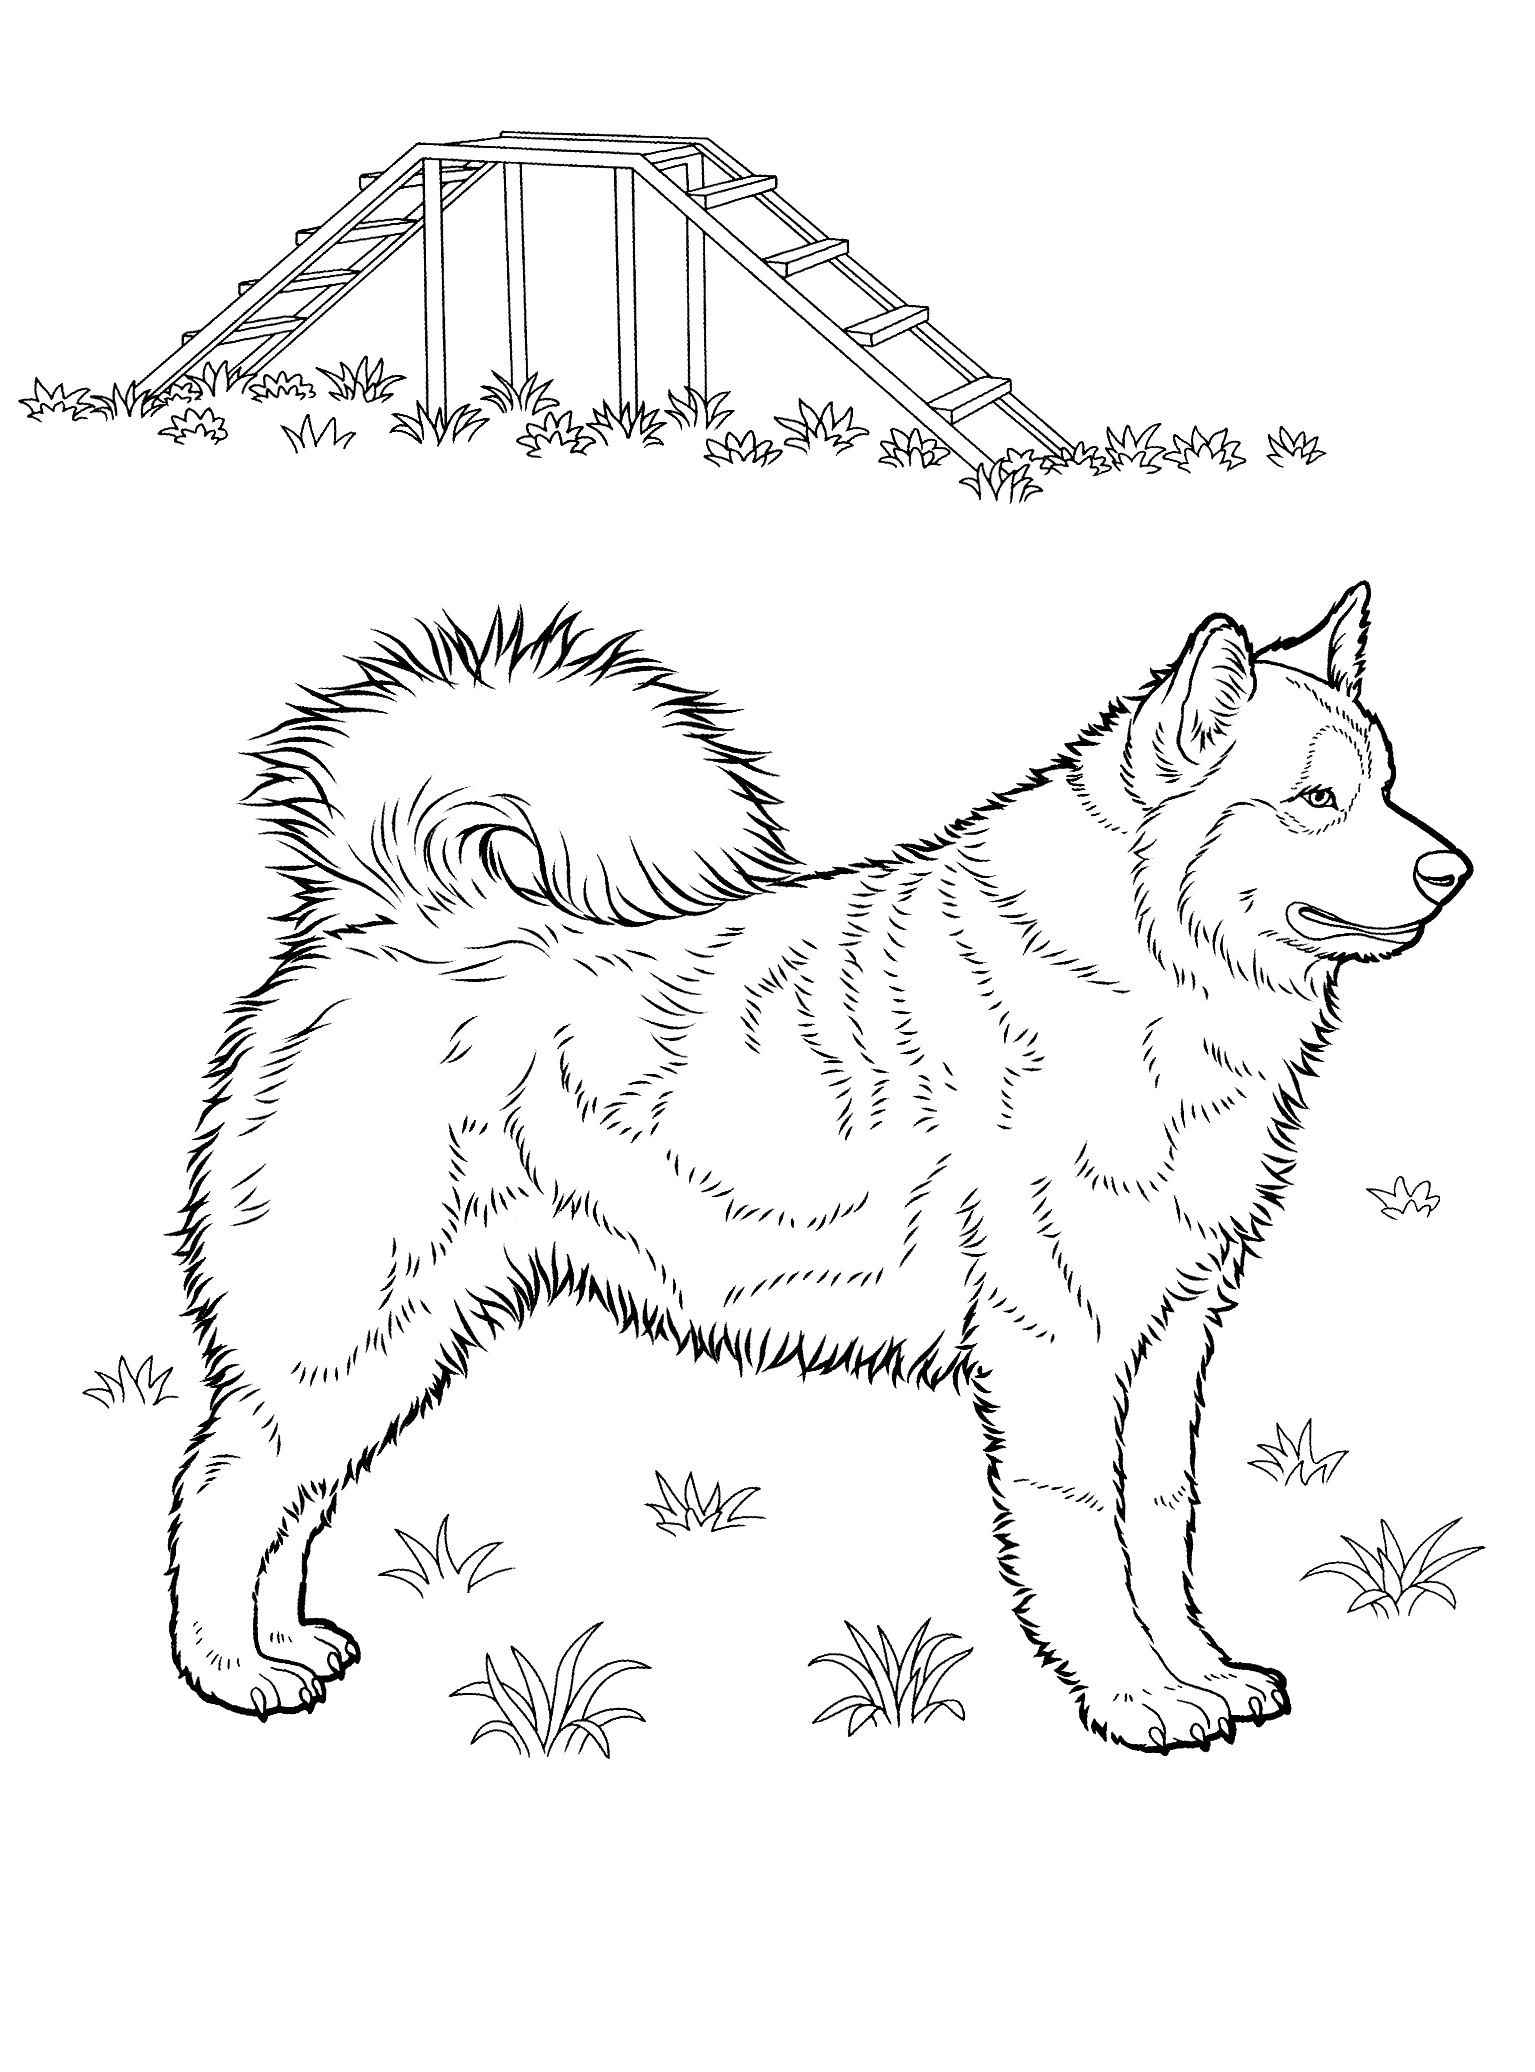 Dog Coloring Pages 7 Teenagers Coloring Pages Pagine Da Colorare